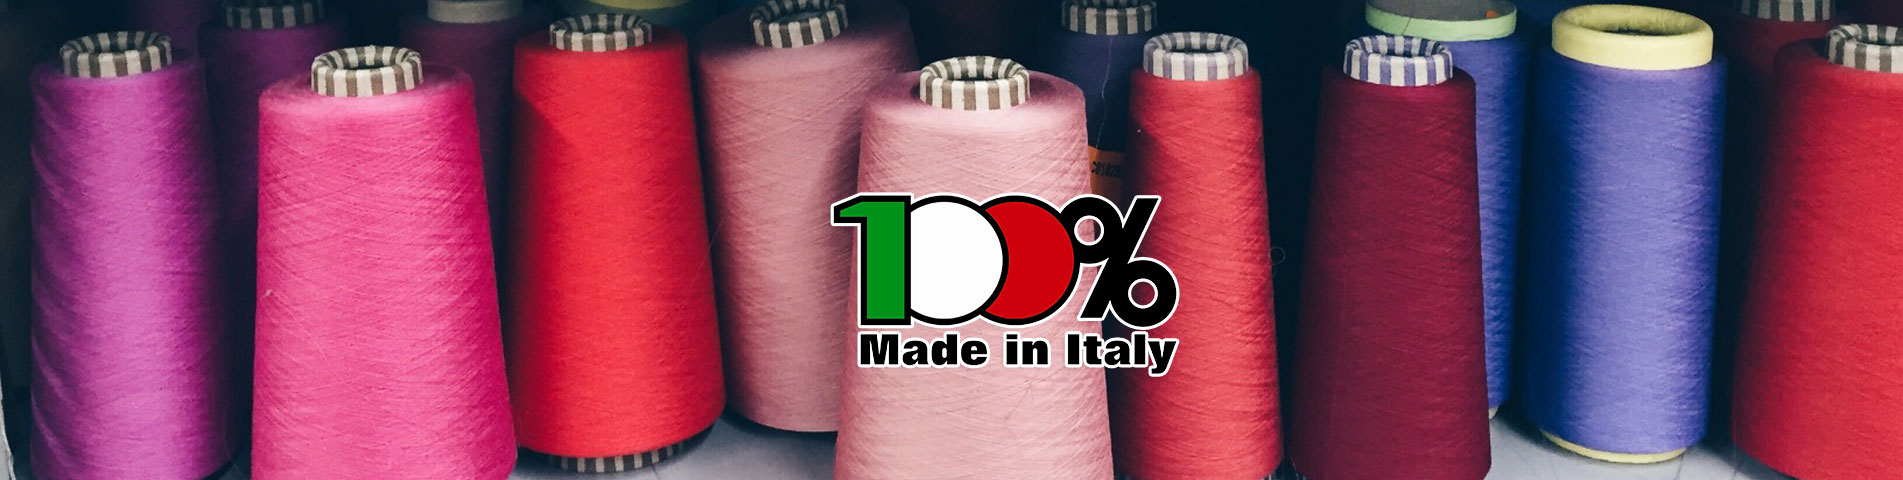 slideo-made-in-italy